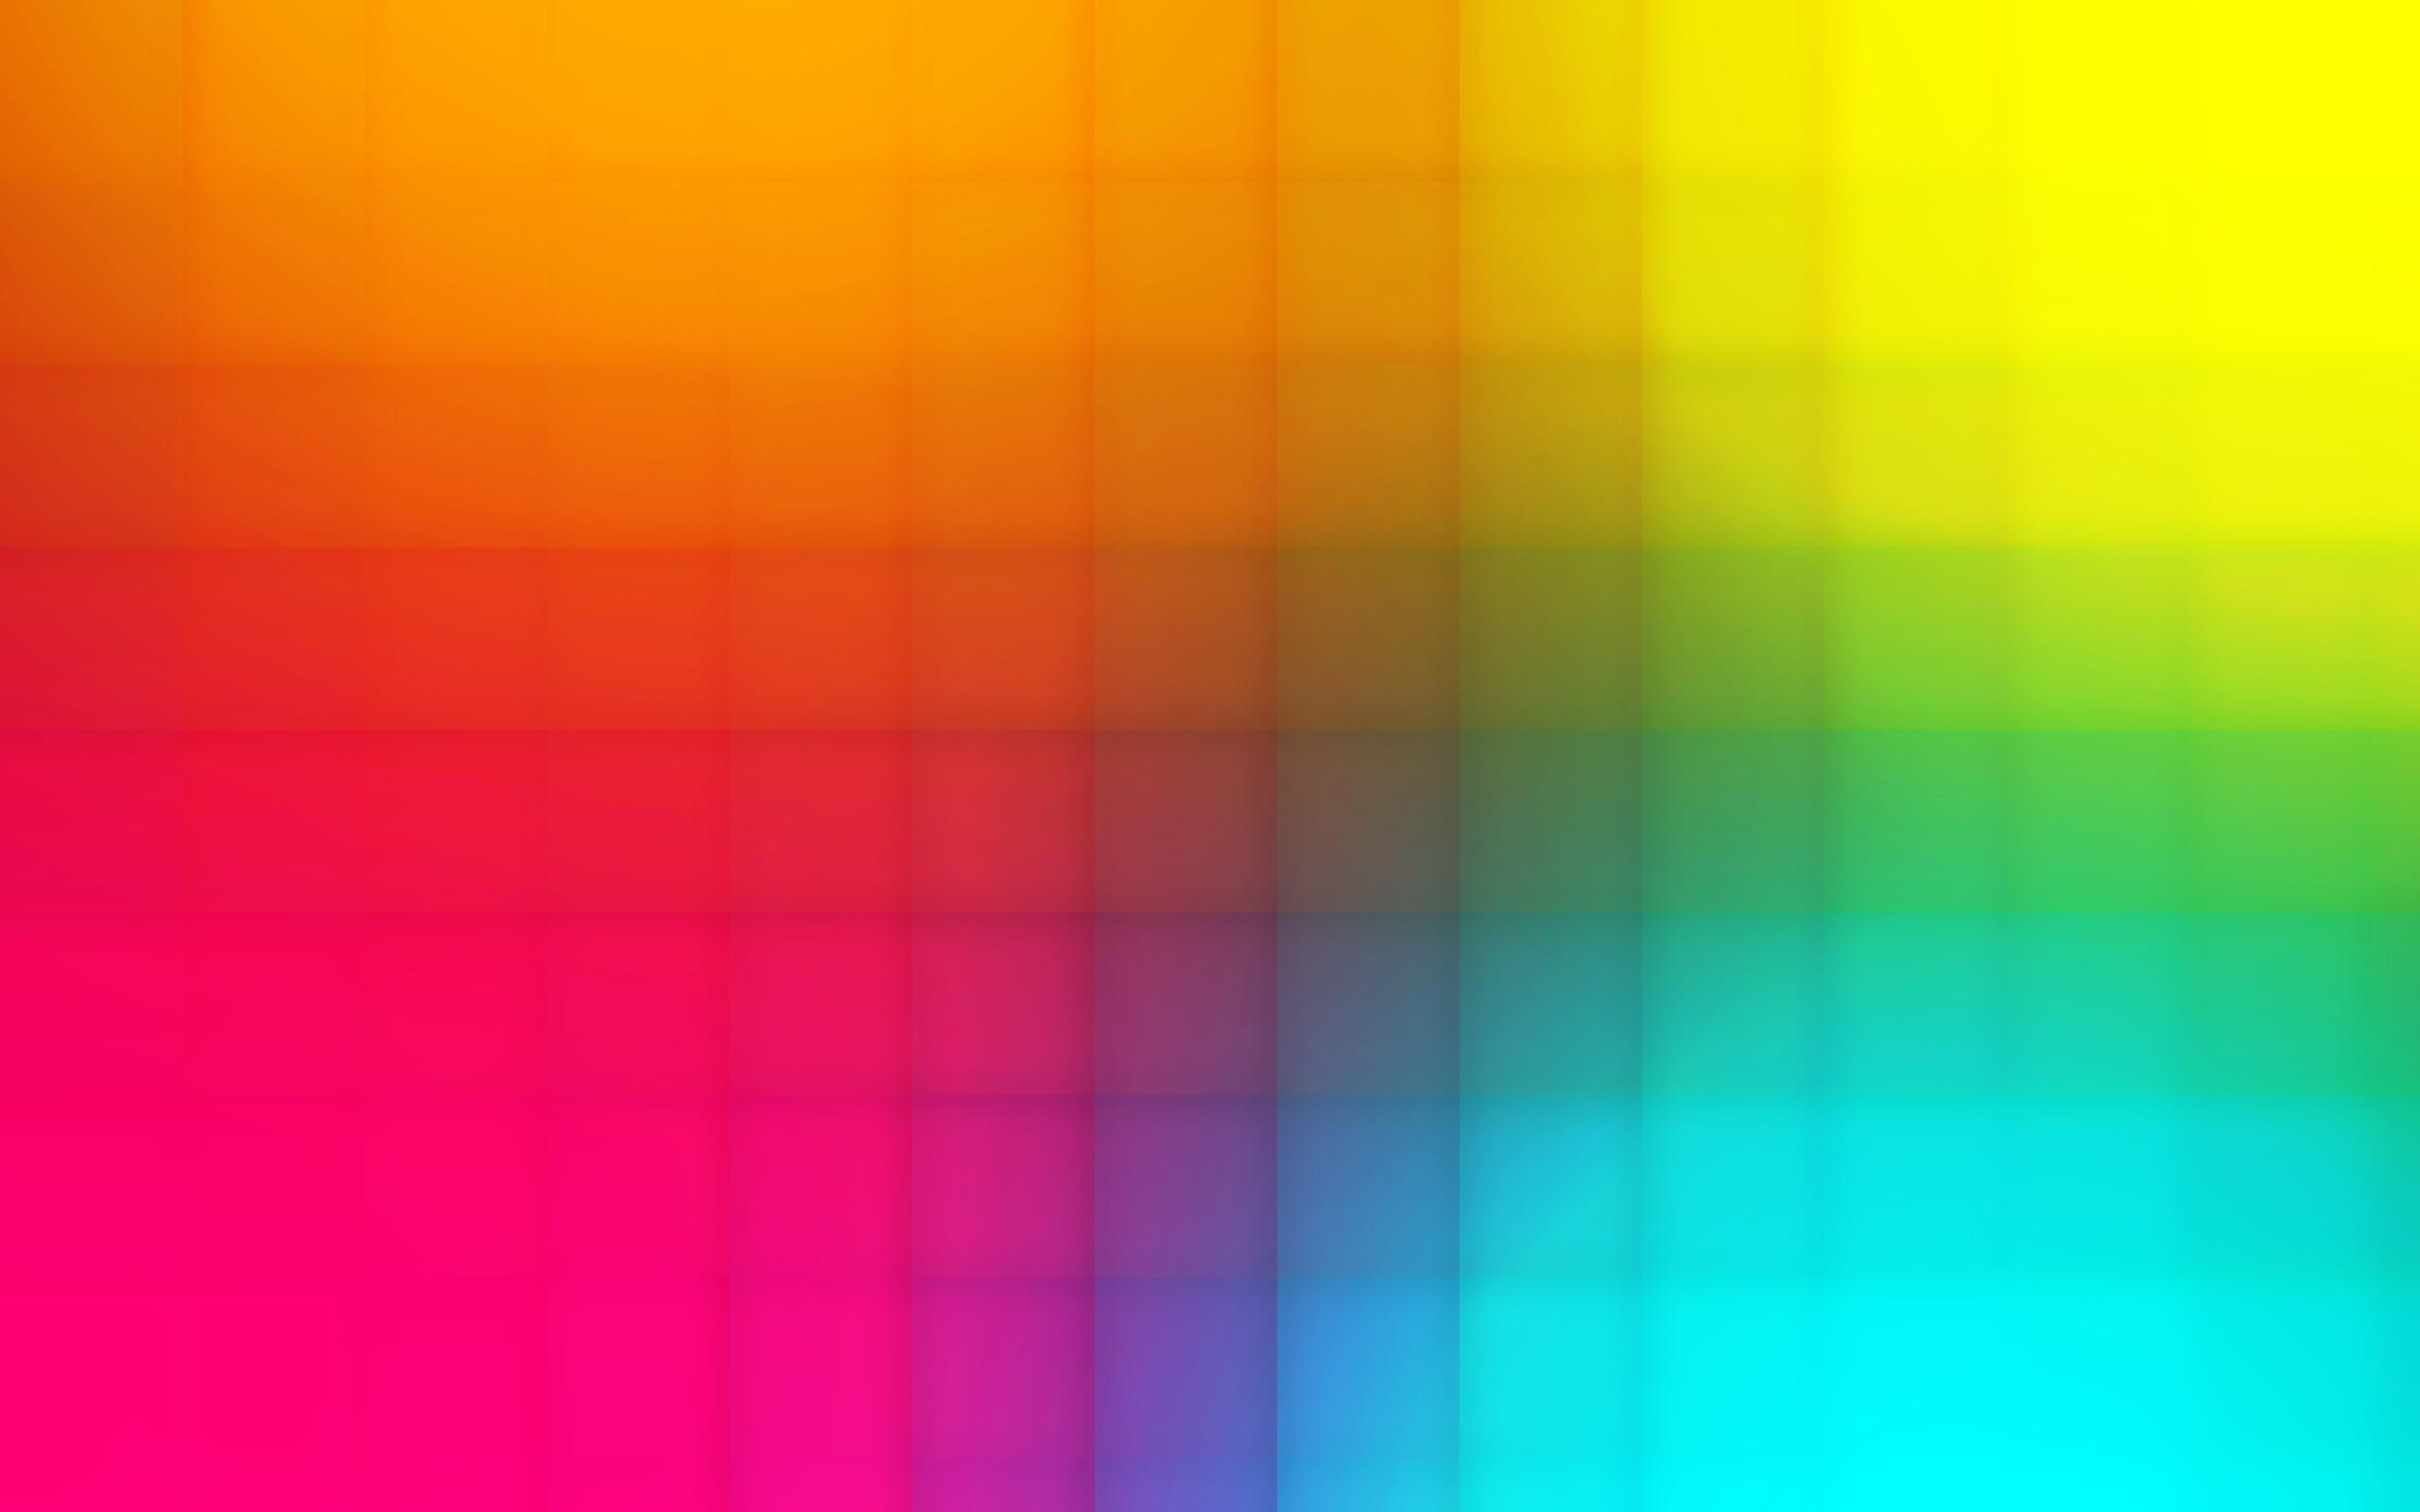 Multicolor Wallpapers 1 - 2560 X 1600 | stmed.net